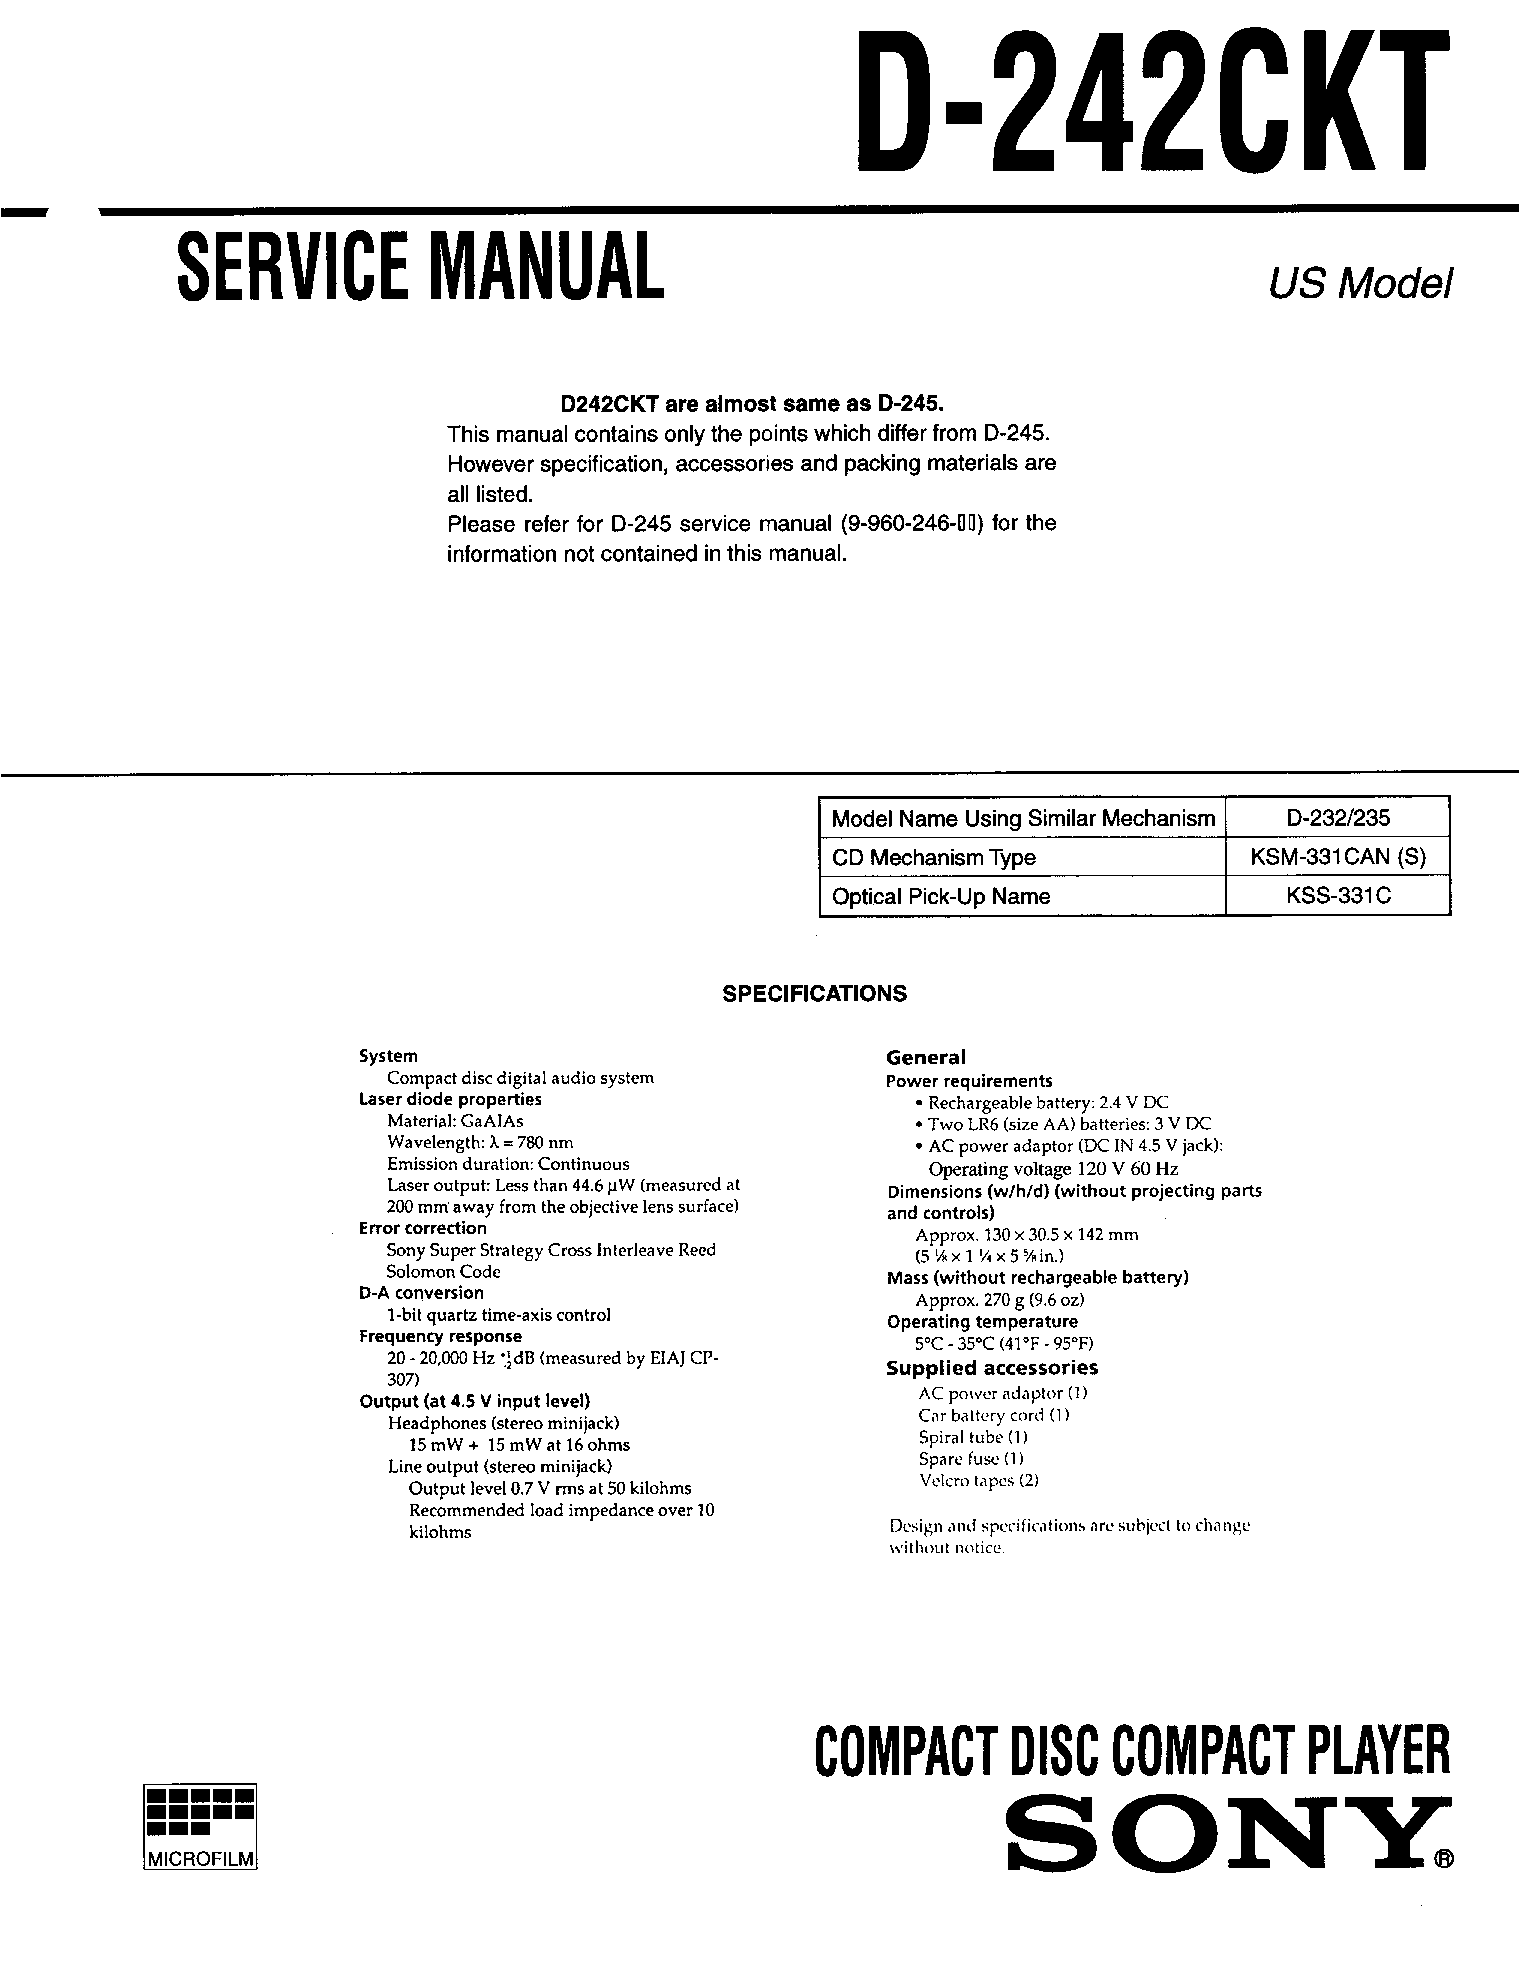 SONY D-242CKT service manual